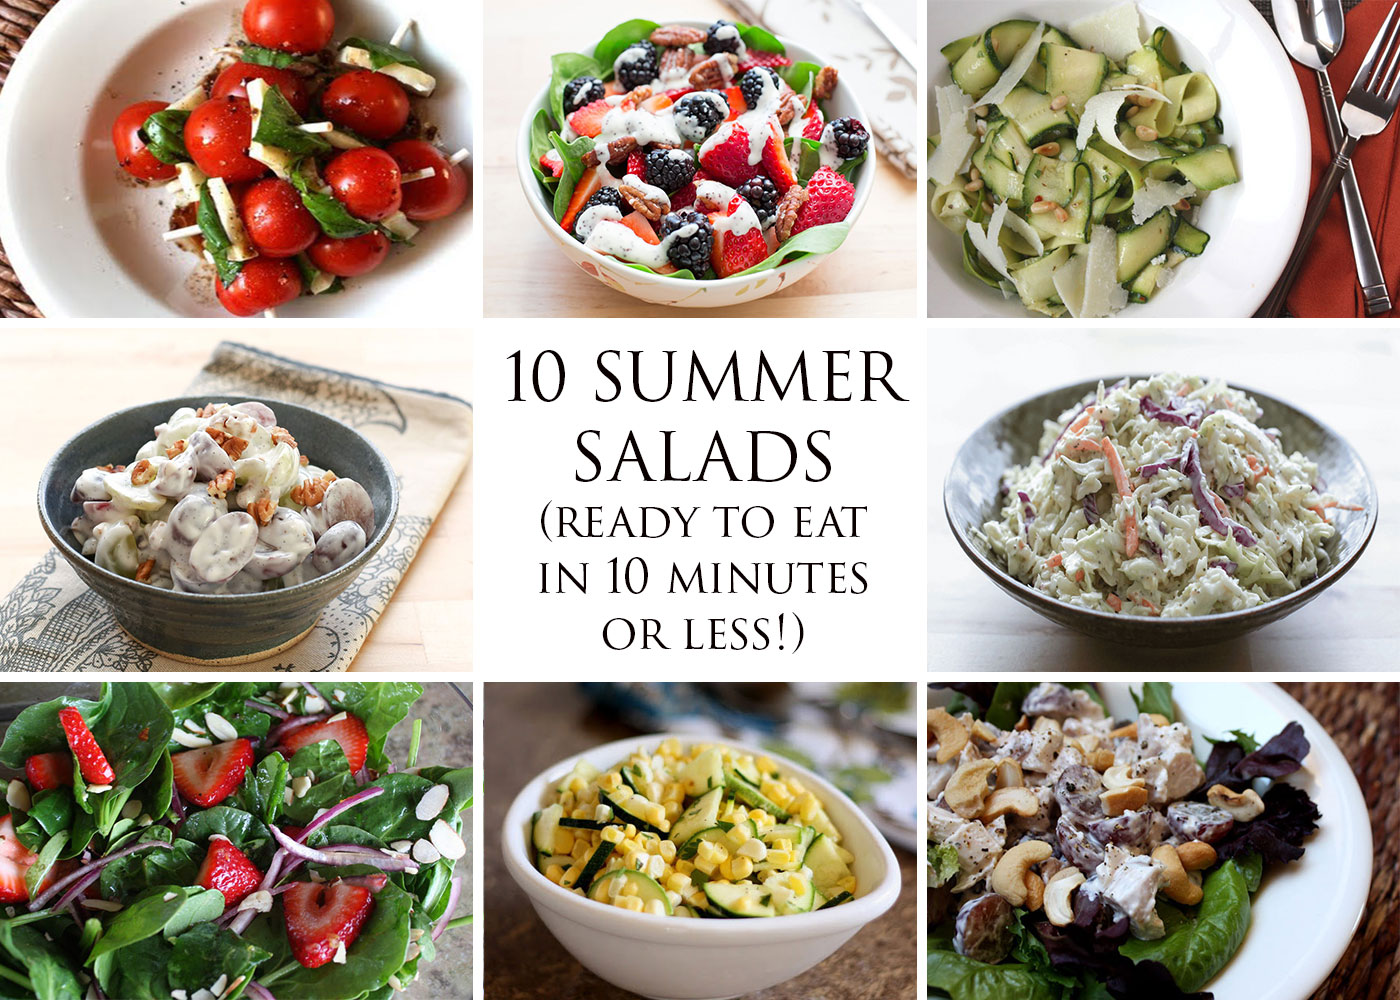 10 Summer Salads (ready to eat in 10 minutes or less!) recipes by Barefeet In The Kitchen